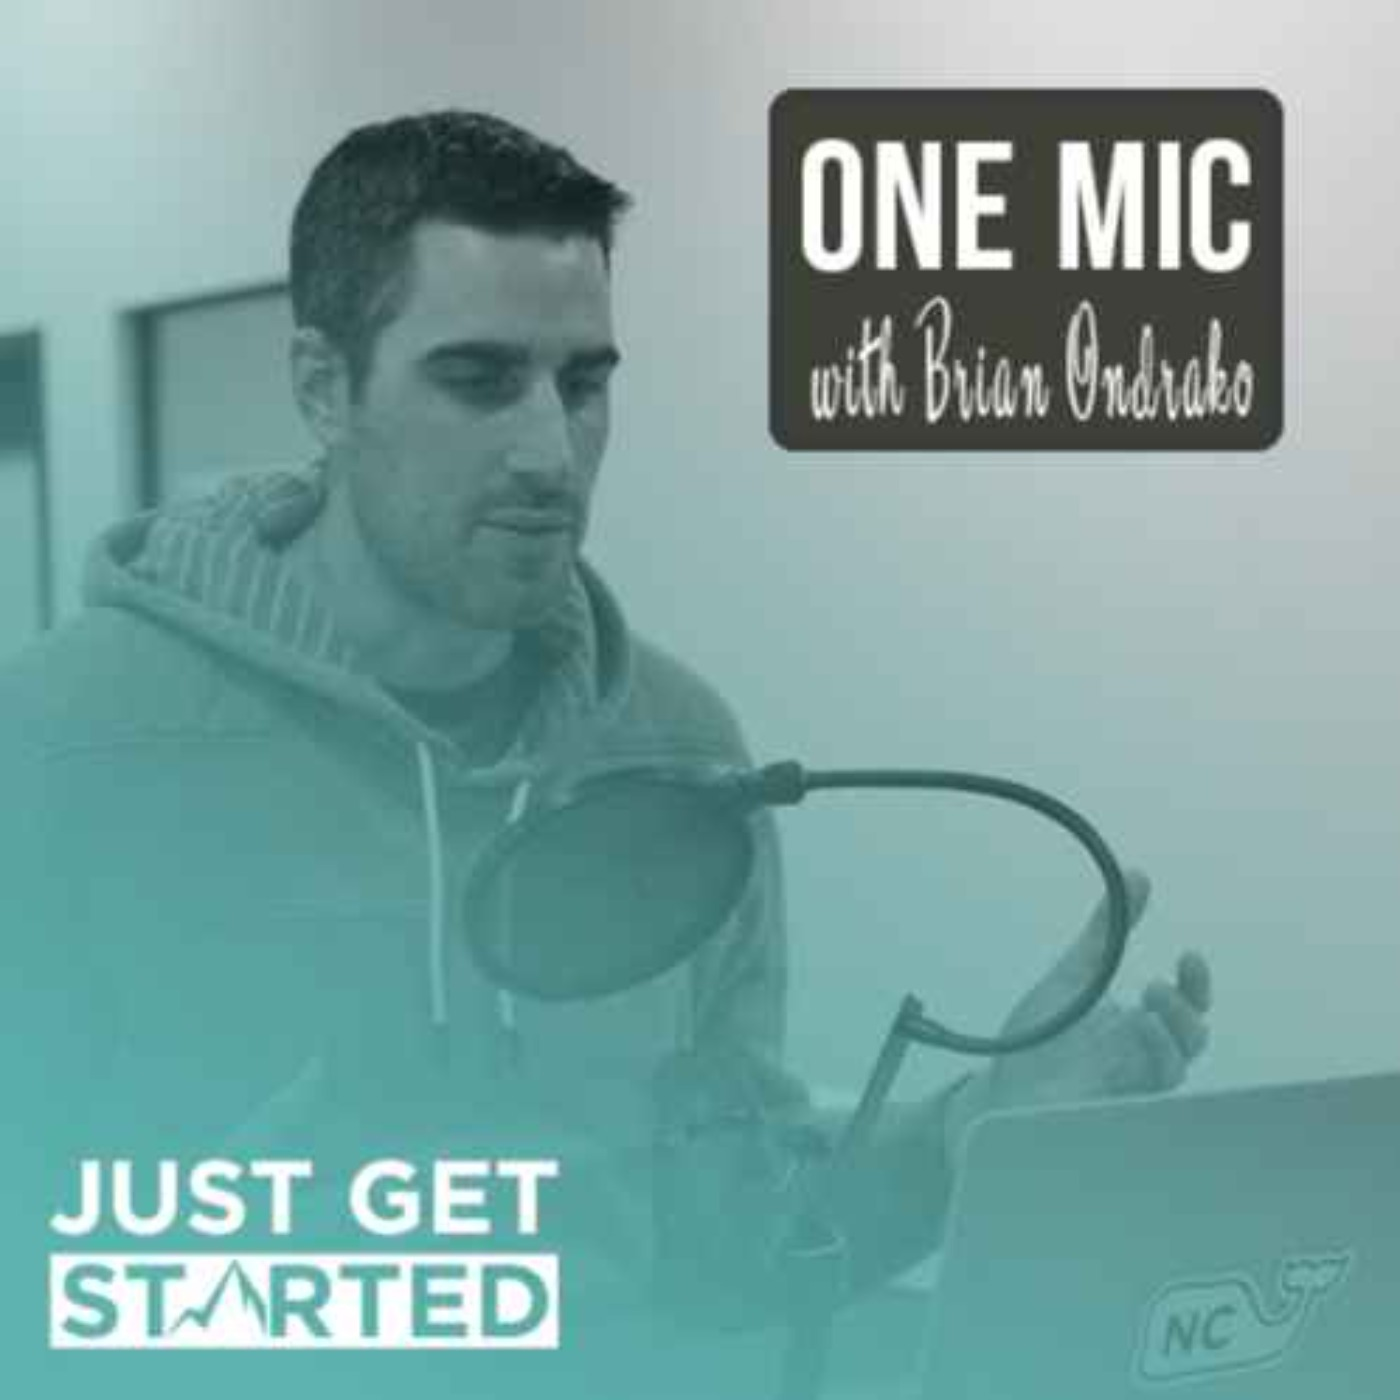 Just Get Finished - One Mic with Brian Ondrako